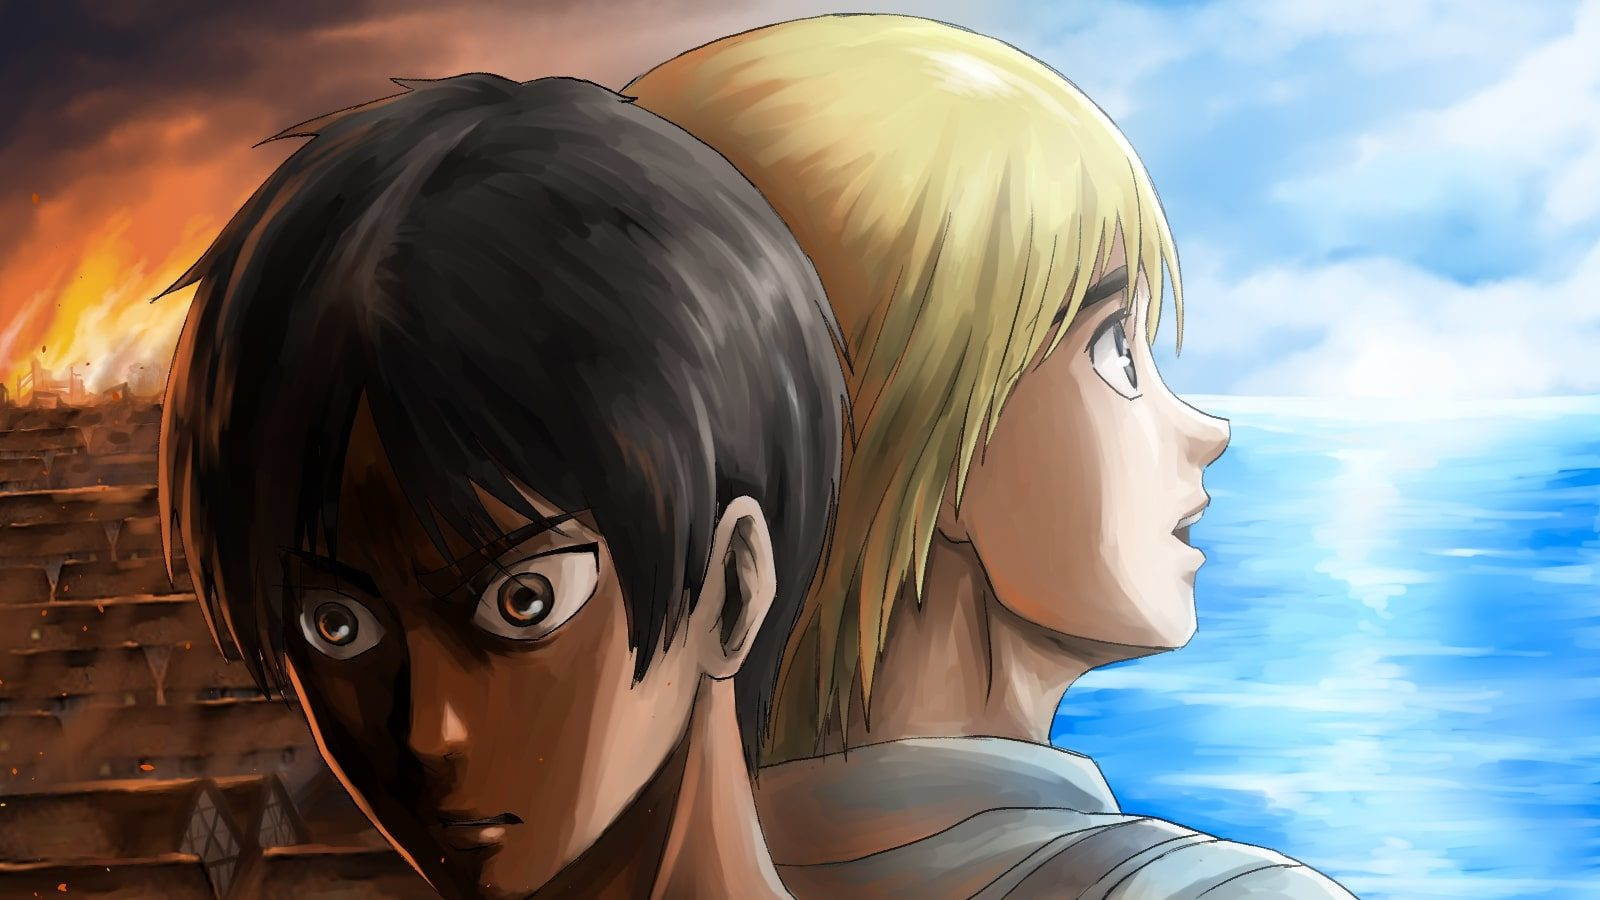 Attack On Titan Chapter 137 Spoilers Predictions Eren Explains Armin The Reason For Rumbling Blocktoro A century ago, the grotesque giants known as titans appeared and consumed all but a few thousand humans. attack on titan chapter 137 spoilers